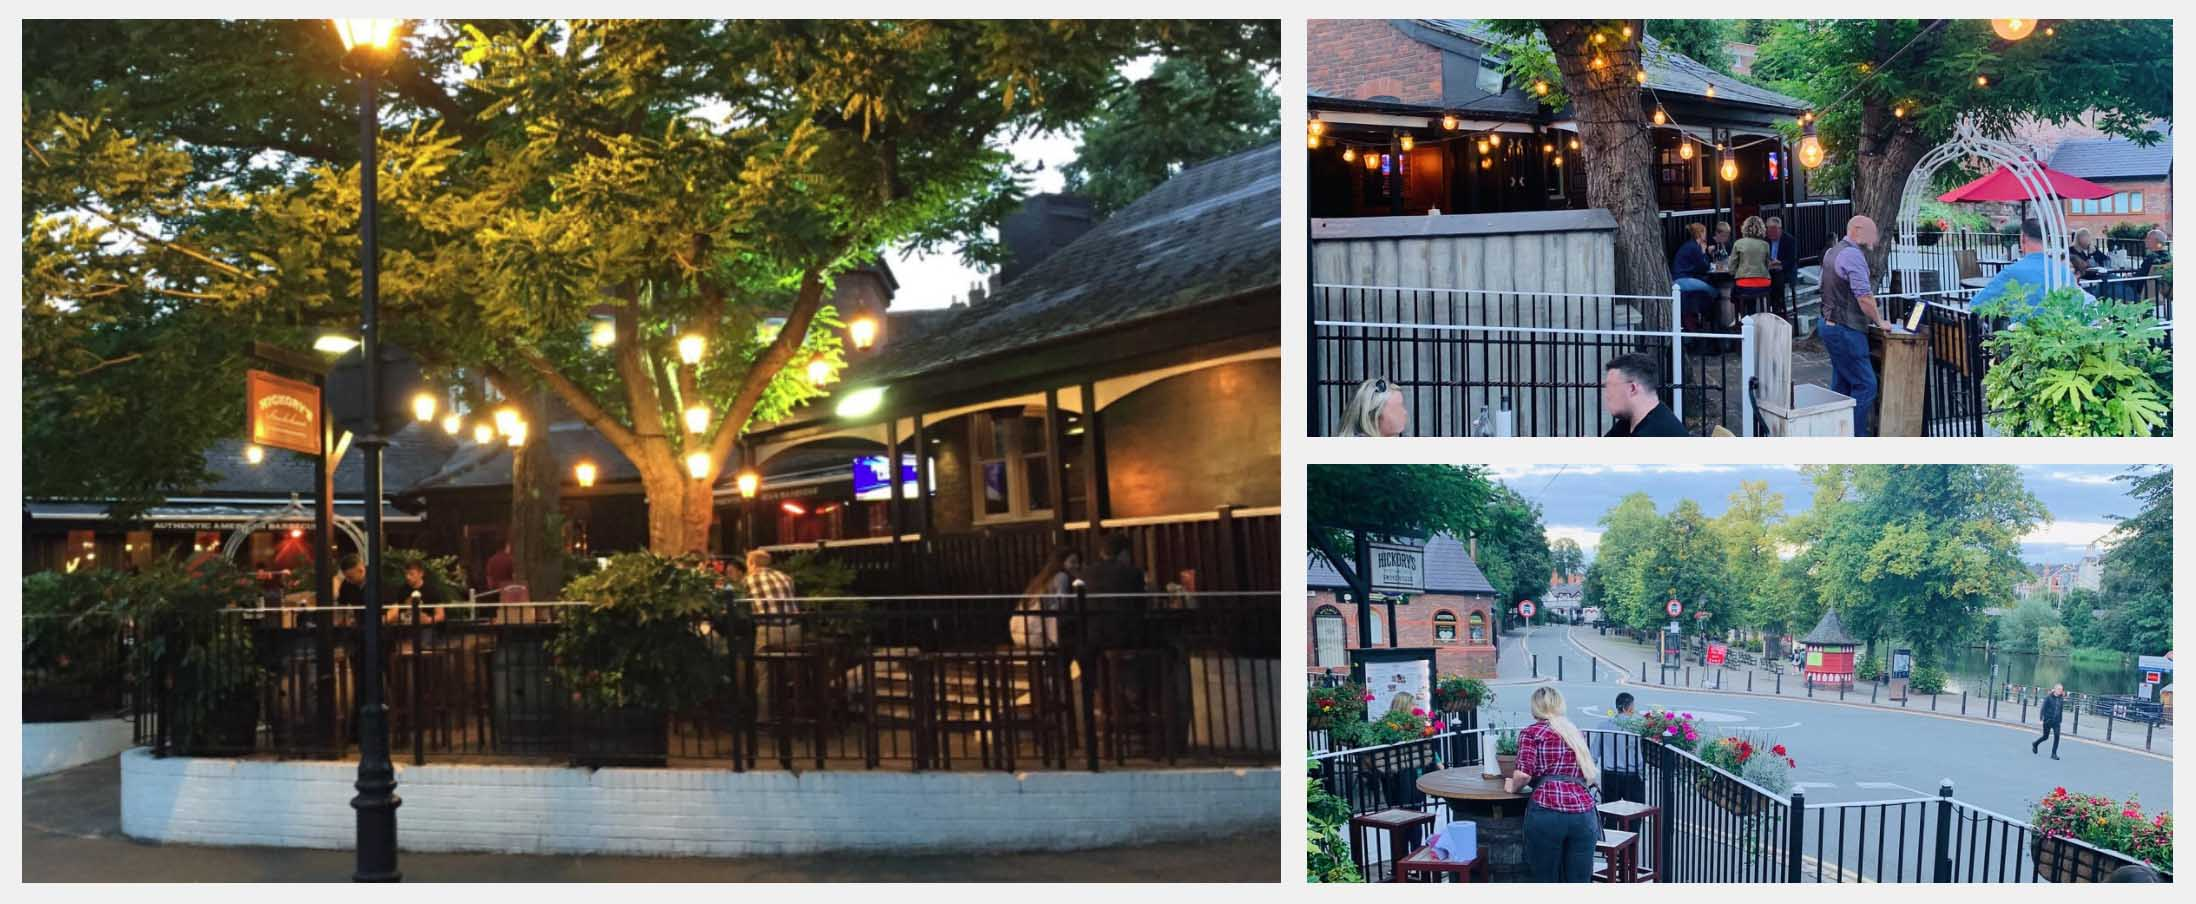 Best Beer Gardens in Chester - Hickory's